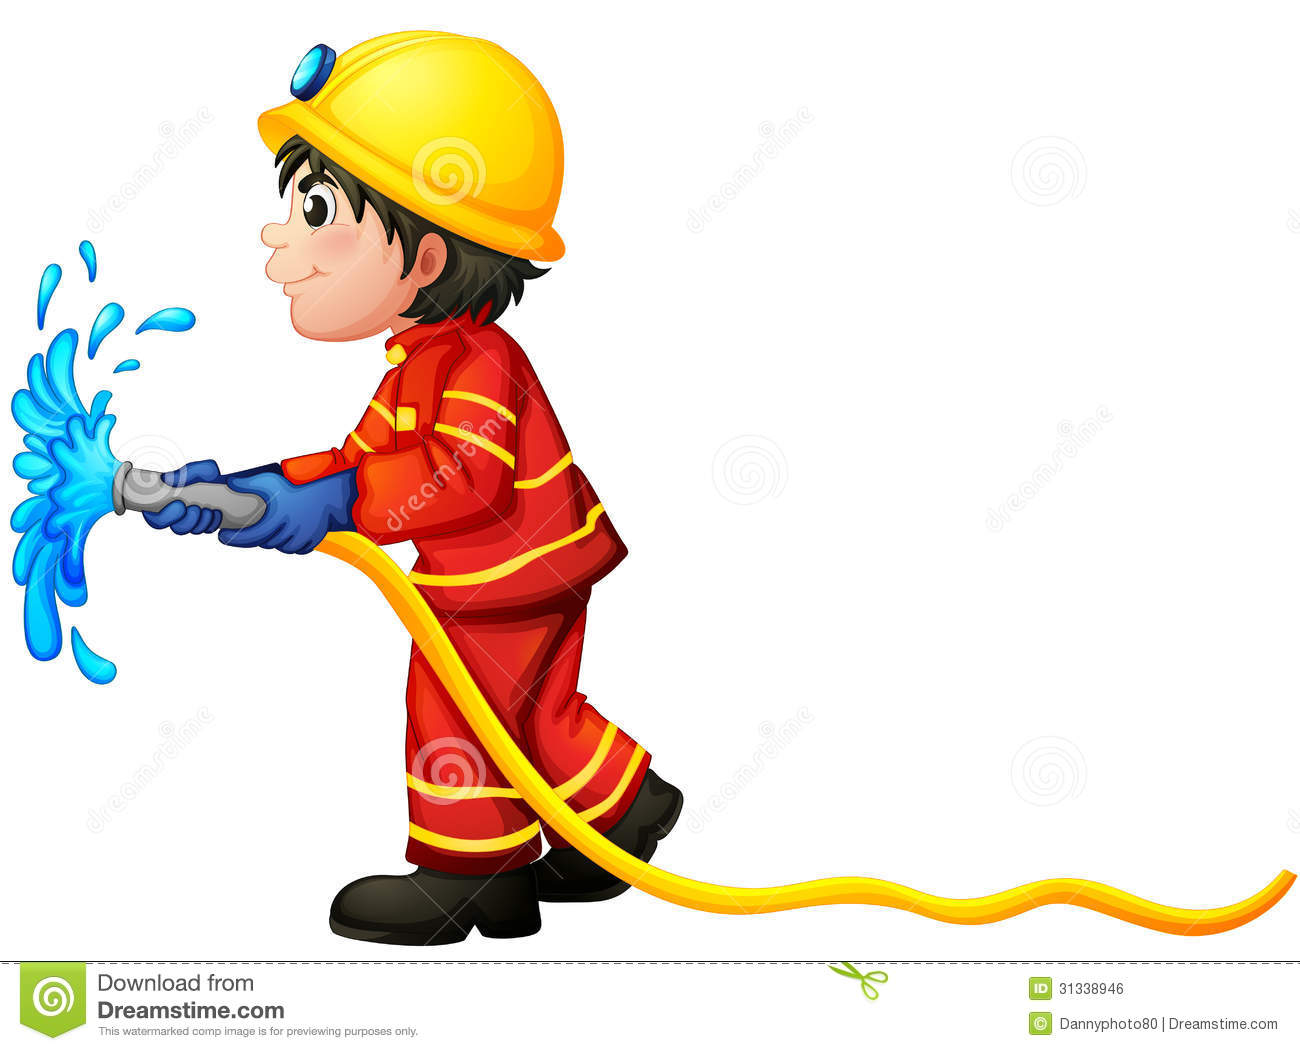 Illustration of a fireman holding a water hose on a white background.